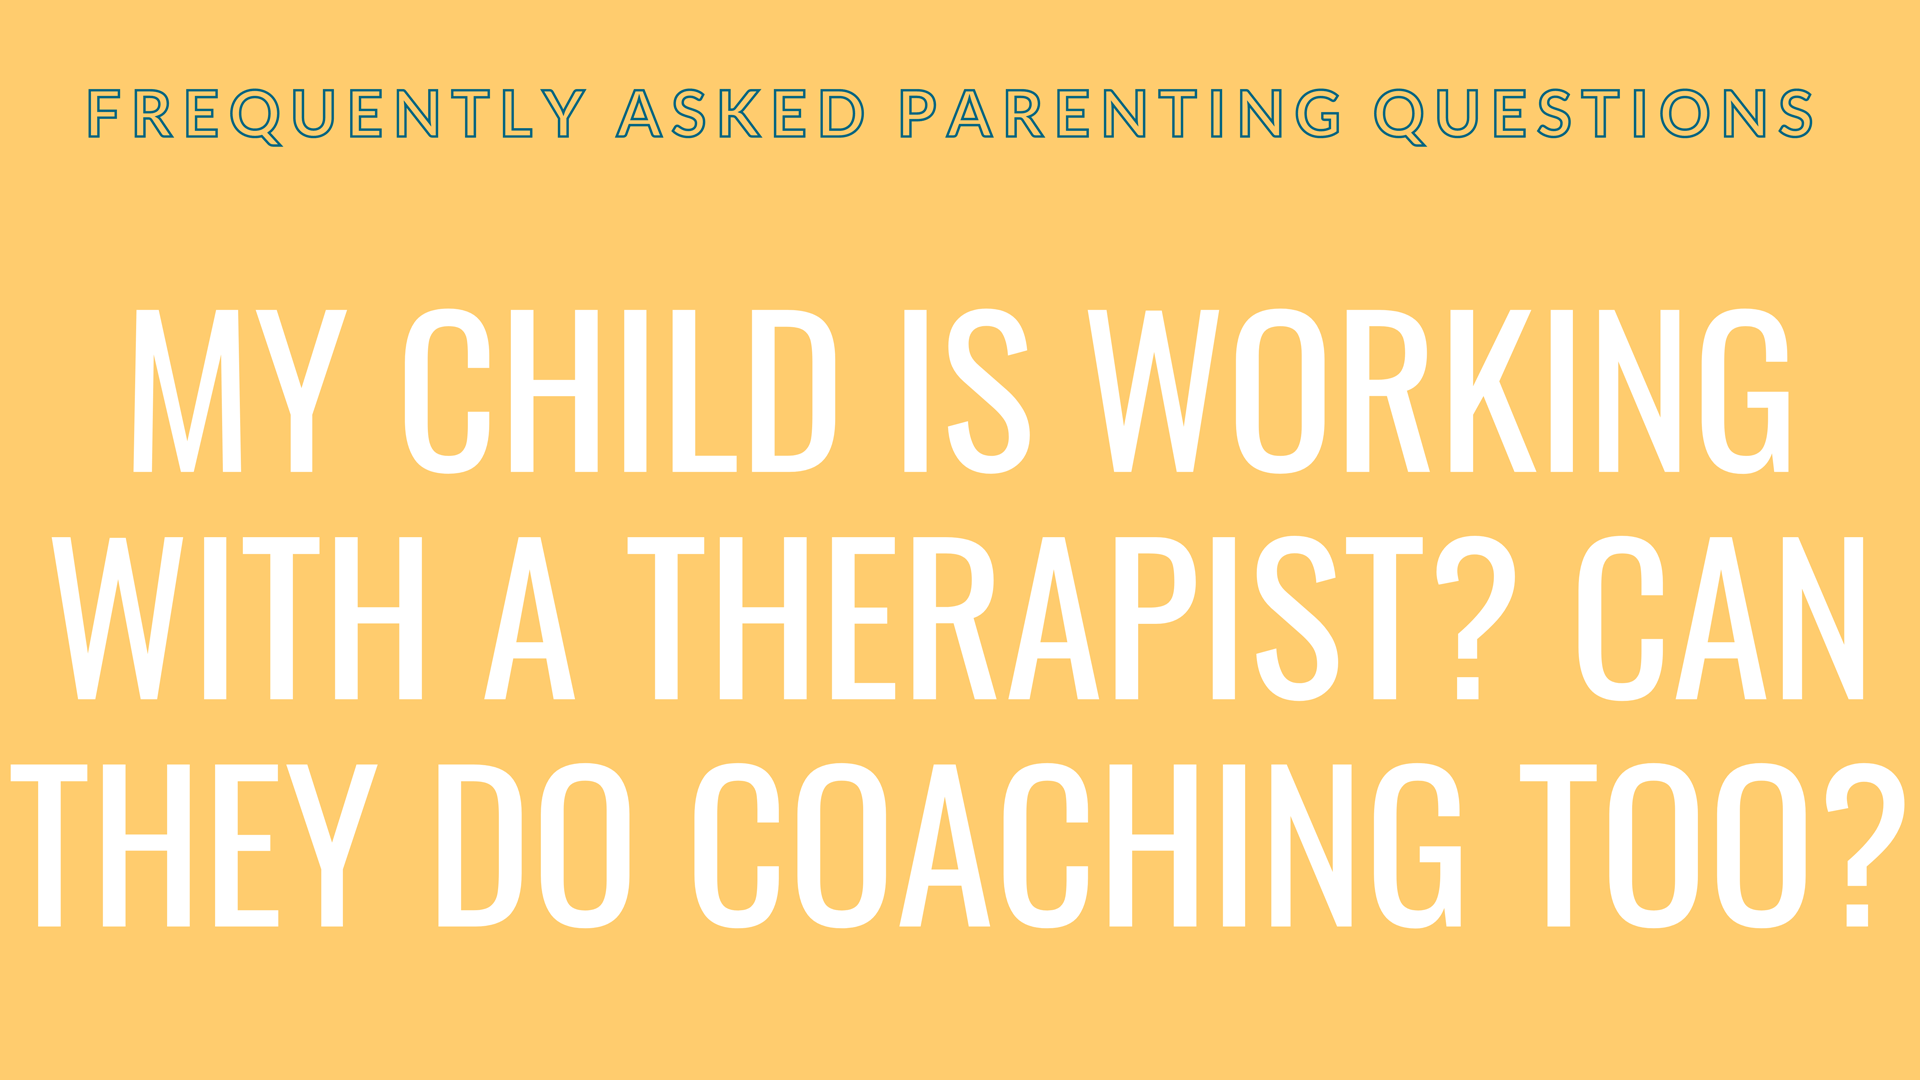 My child is working with a therapist? Can they do coaching too?